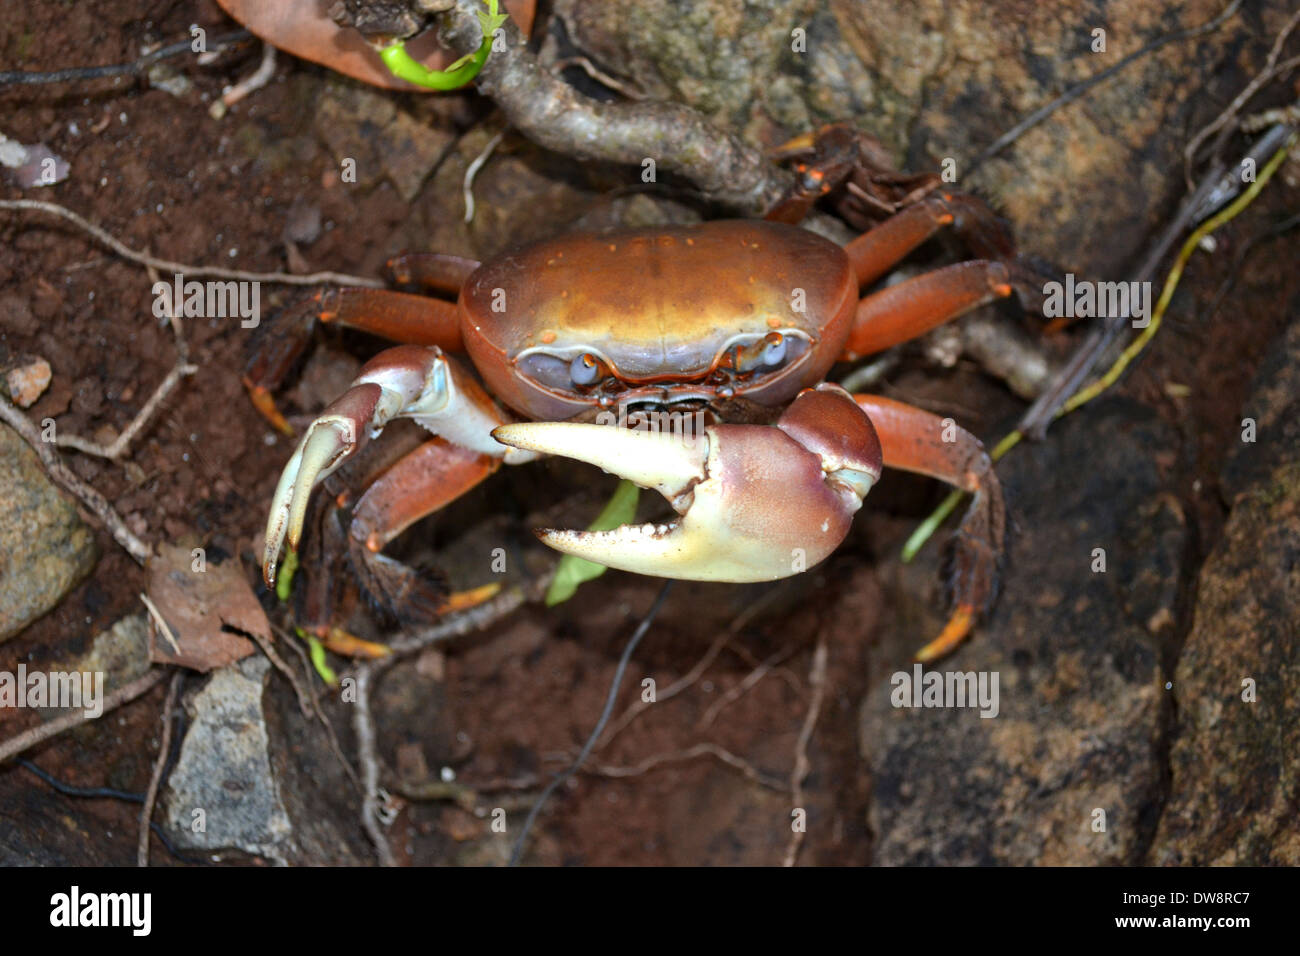 Land crab, Cardisoma sp., Wallis Island, Wallis and Futuna, South Pacific - Stock Image